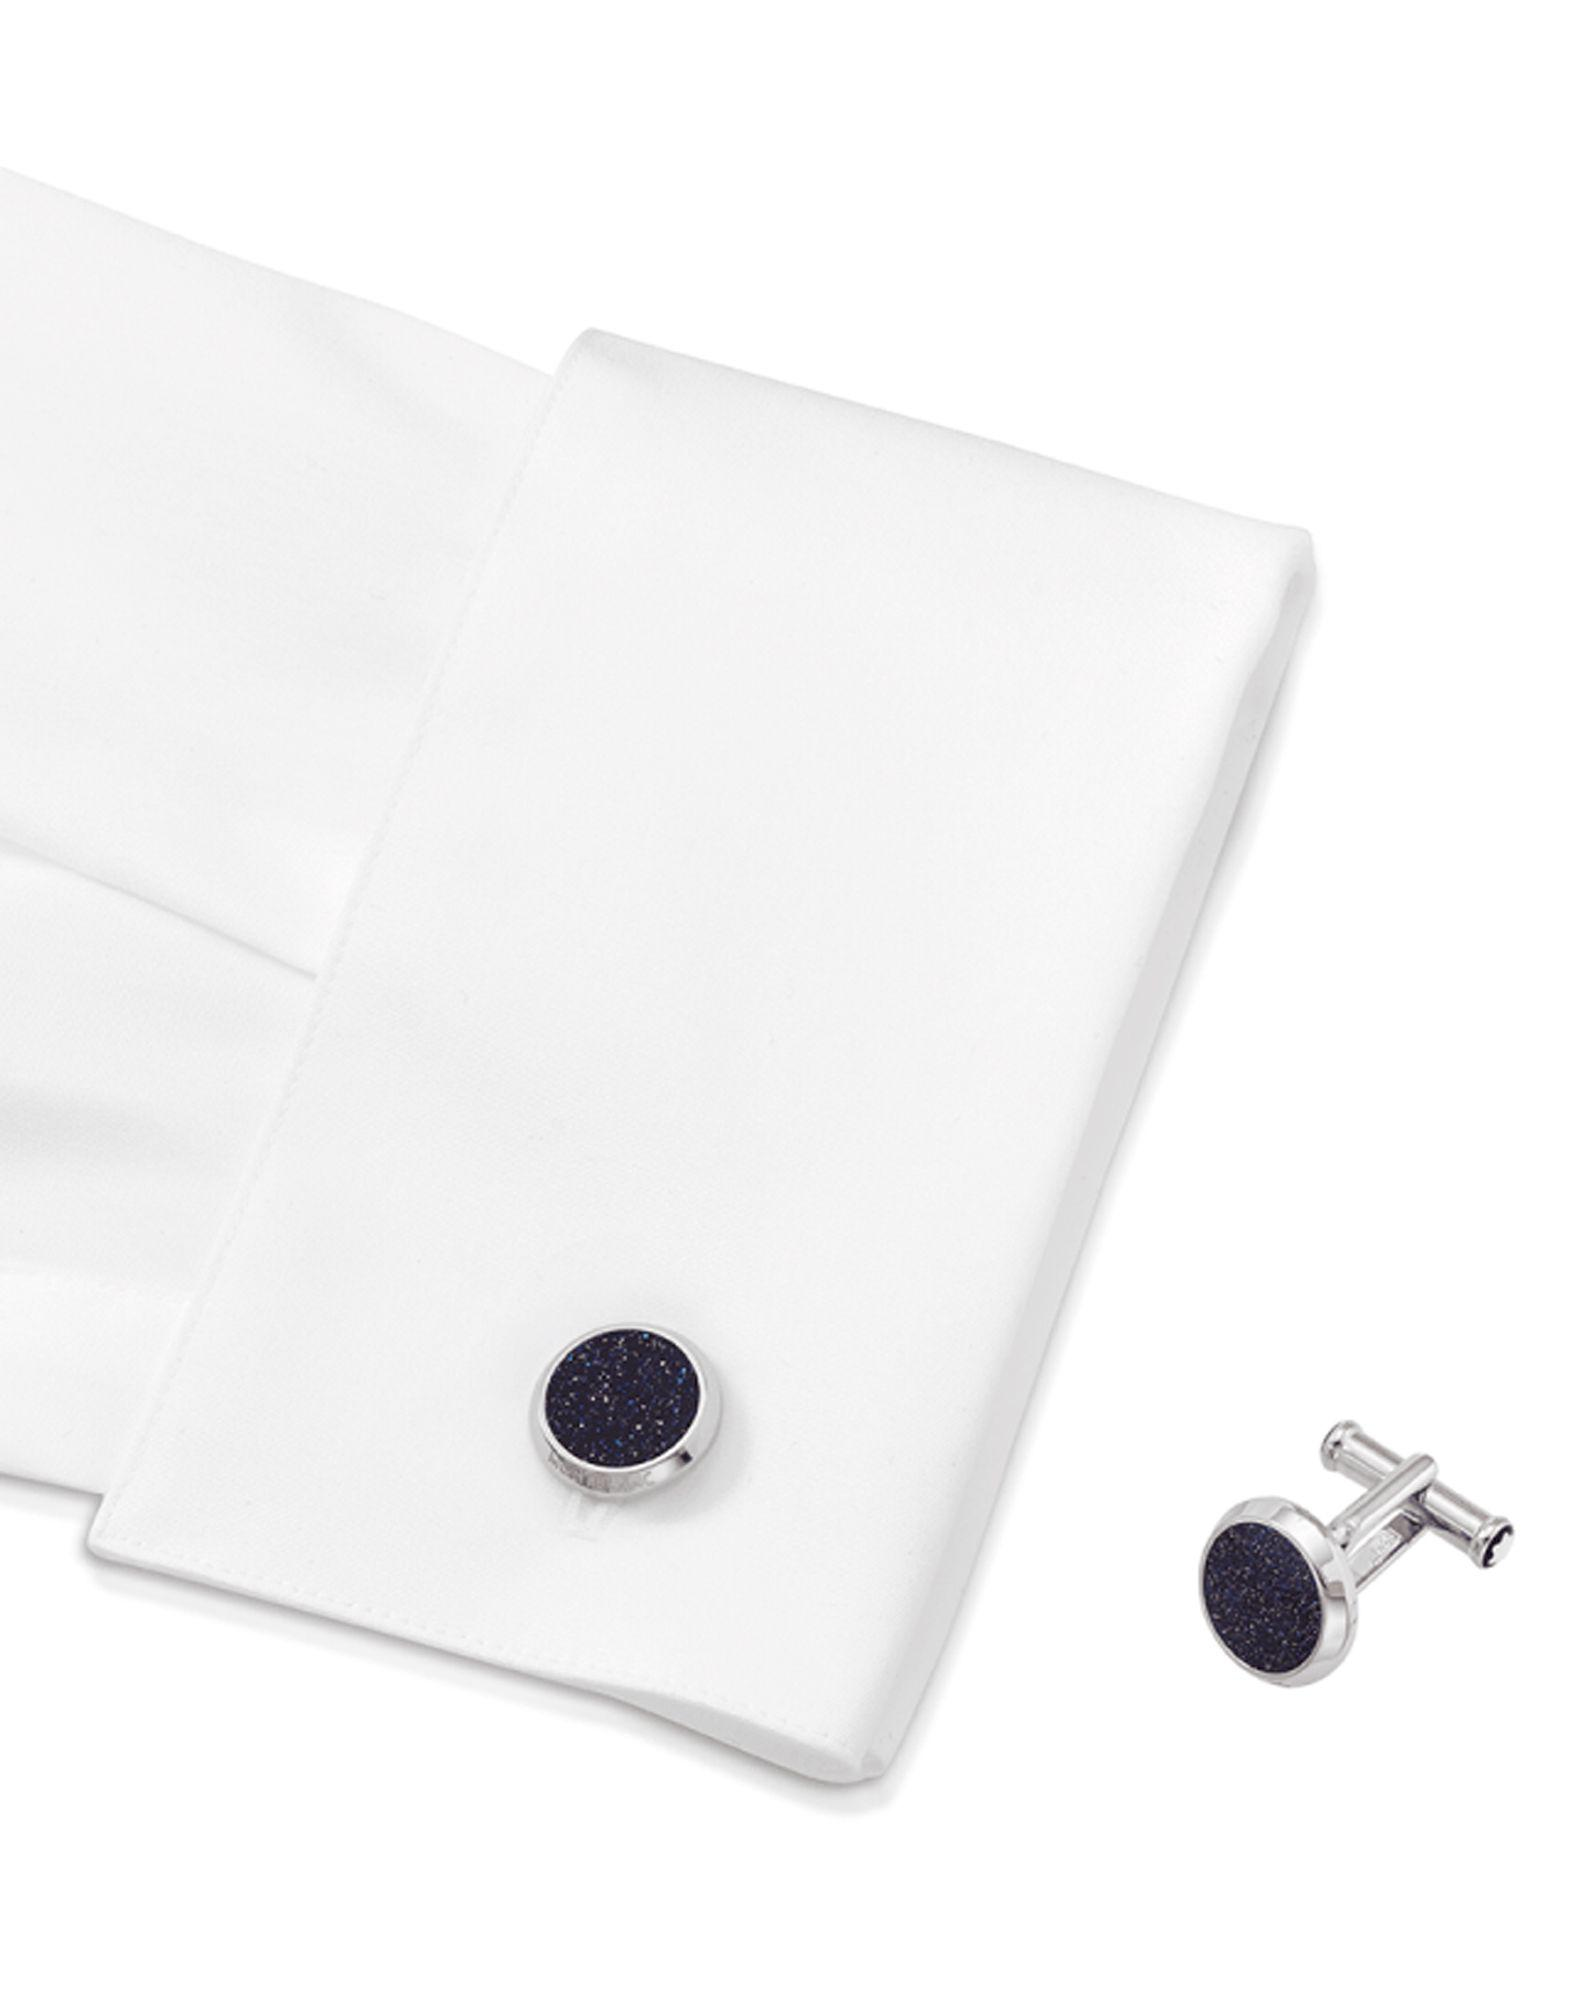 74a40bbc27d2 Montblanc Cufflinks And Tie Clips in Metallic for Men - Lyst